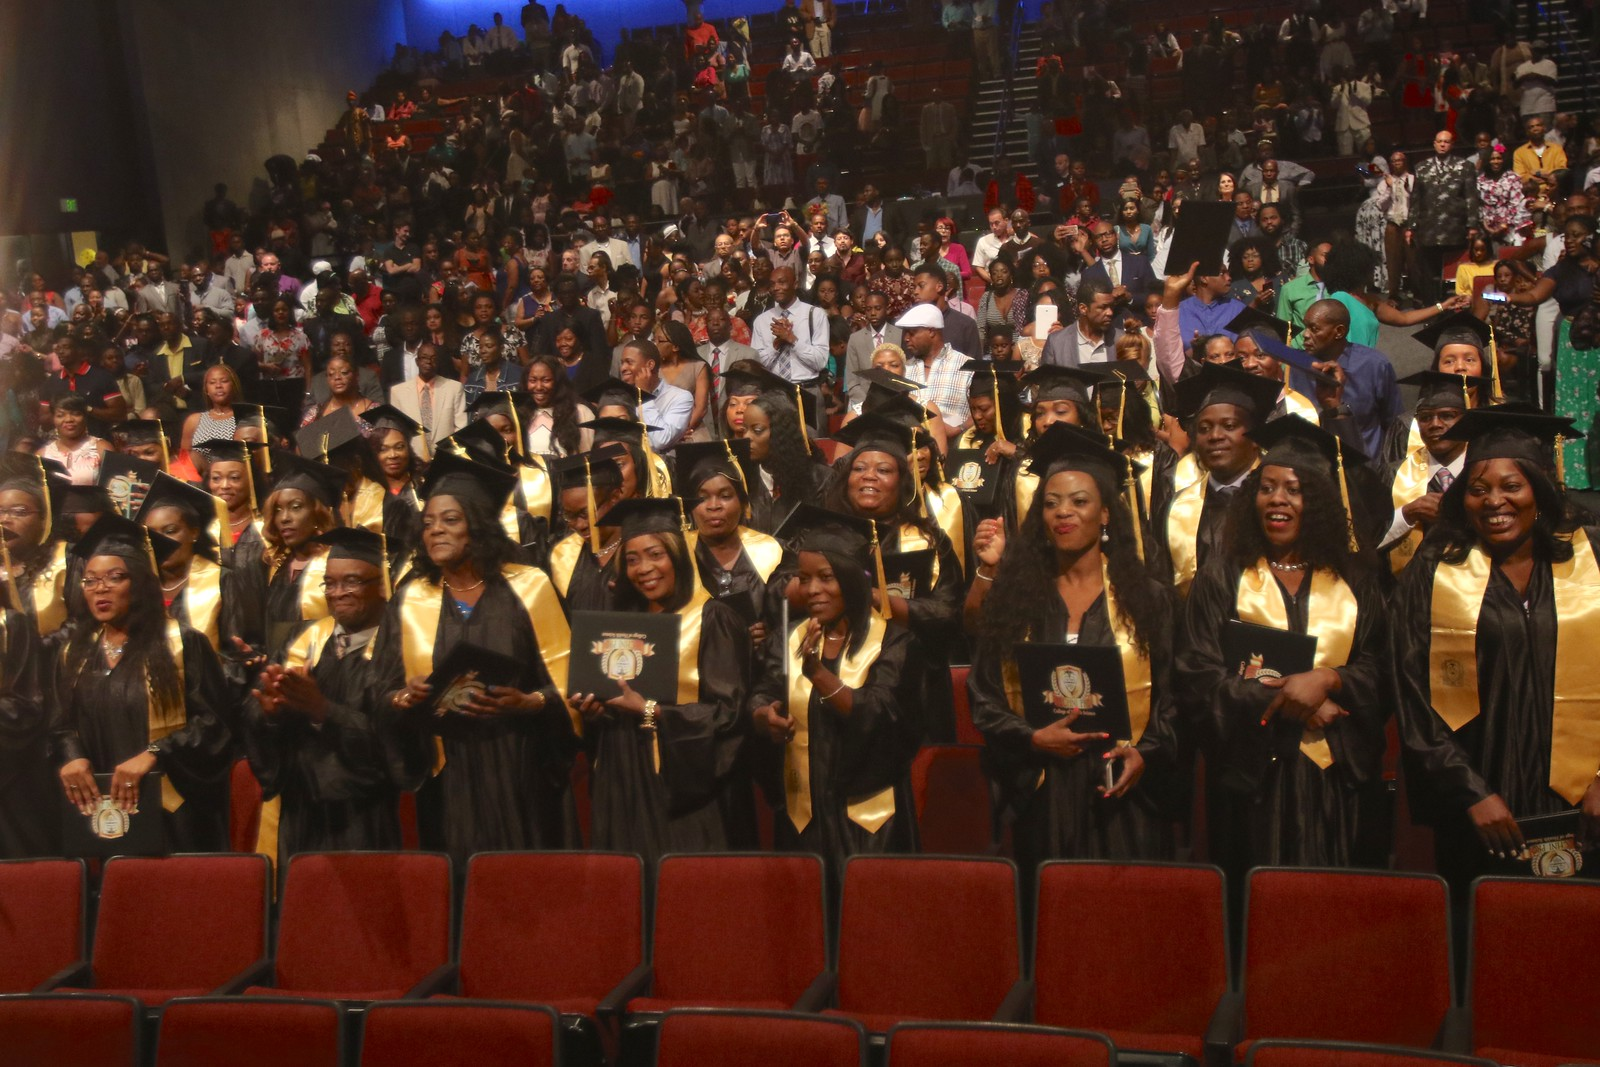 Students having their graduation ceremony